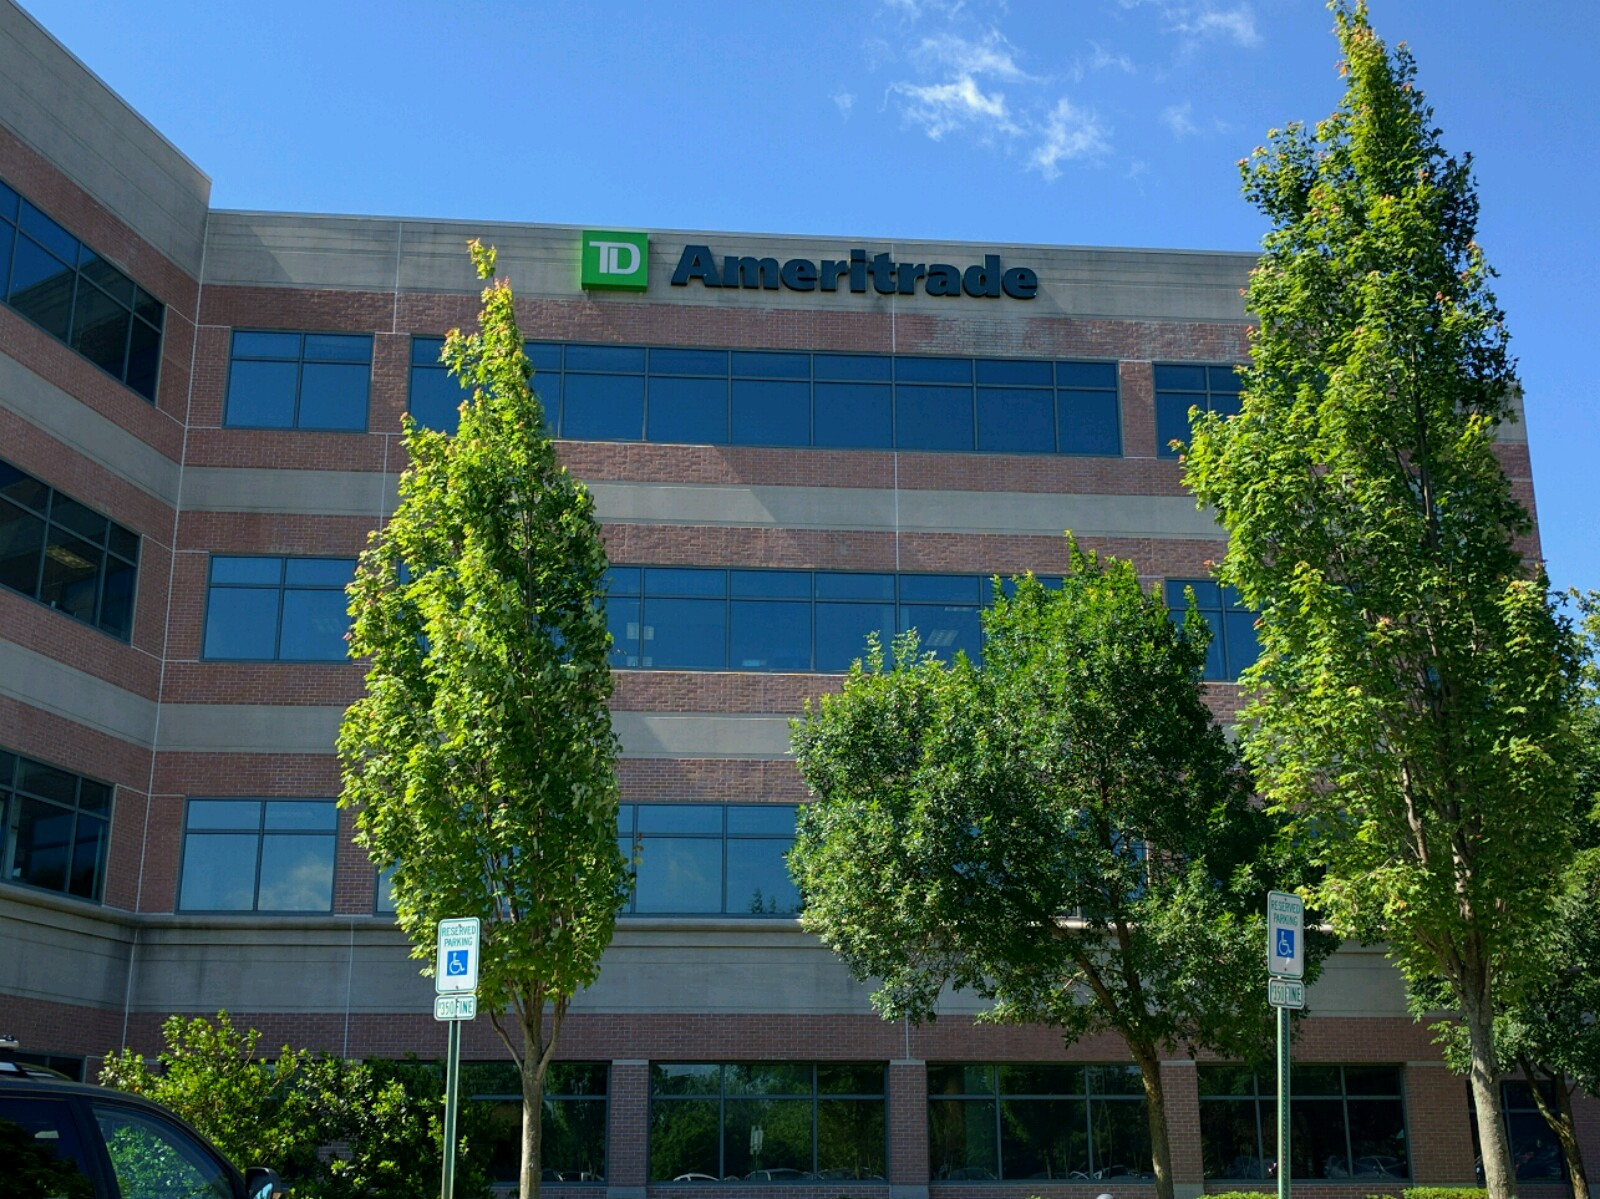 TD Ameritrade office in Columbia, Maryland.